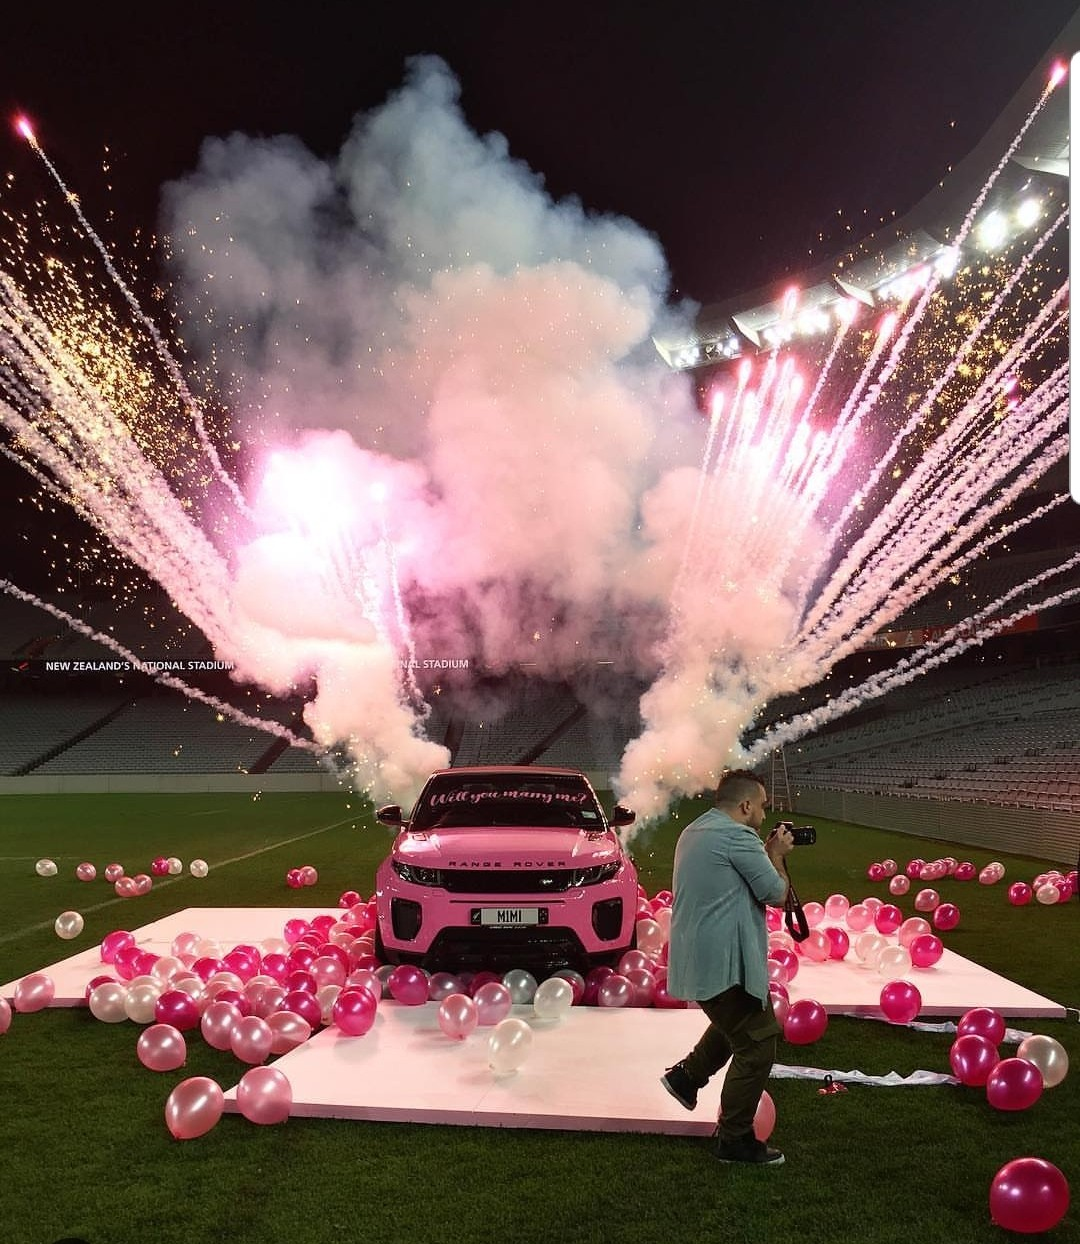 Photos/Video: New Zealand fitness trainer proposes to his woman with a customised Range Rover